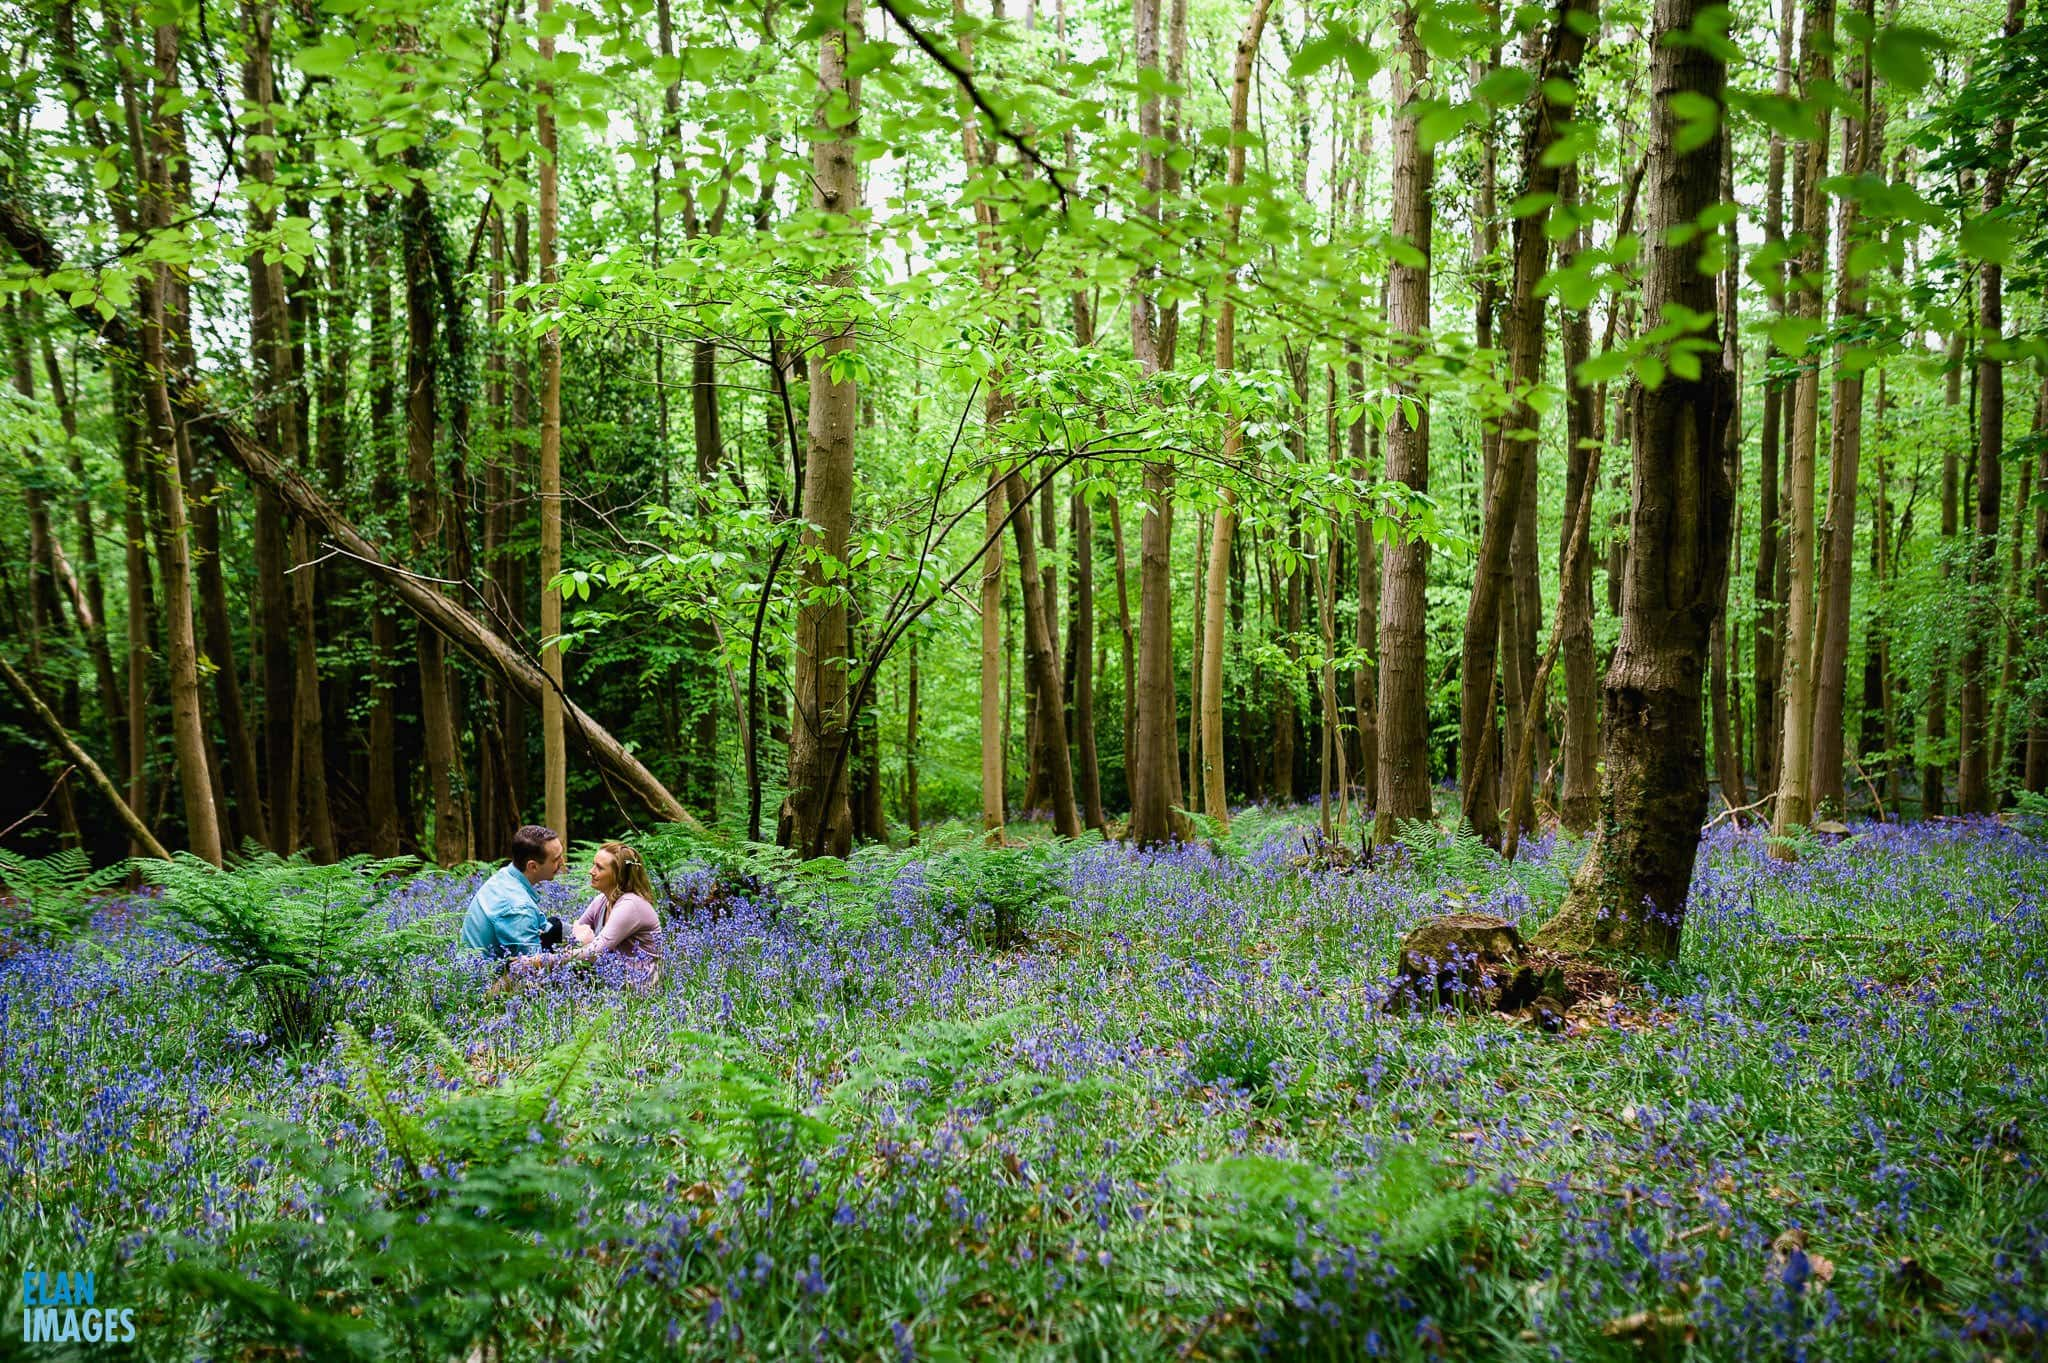 Engagement Photo Shoot in the Bluebell Woods near Bristol 21